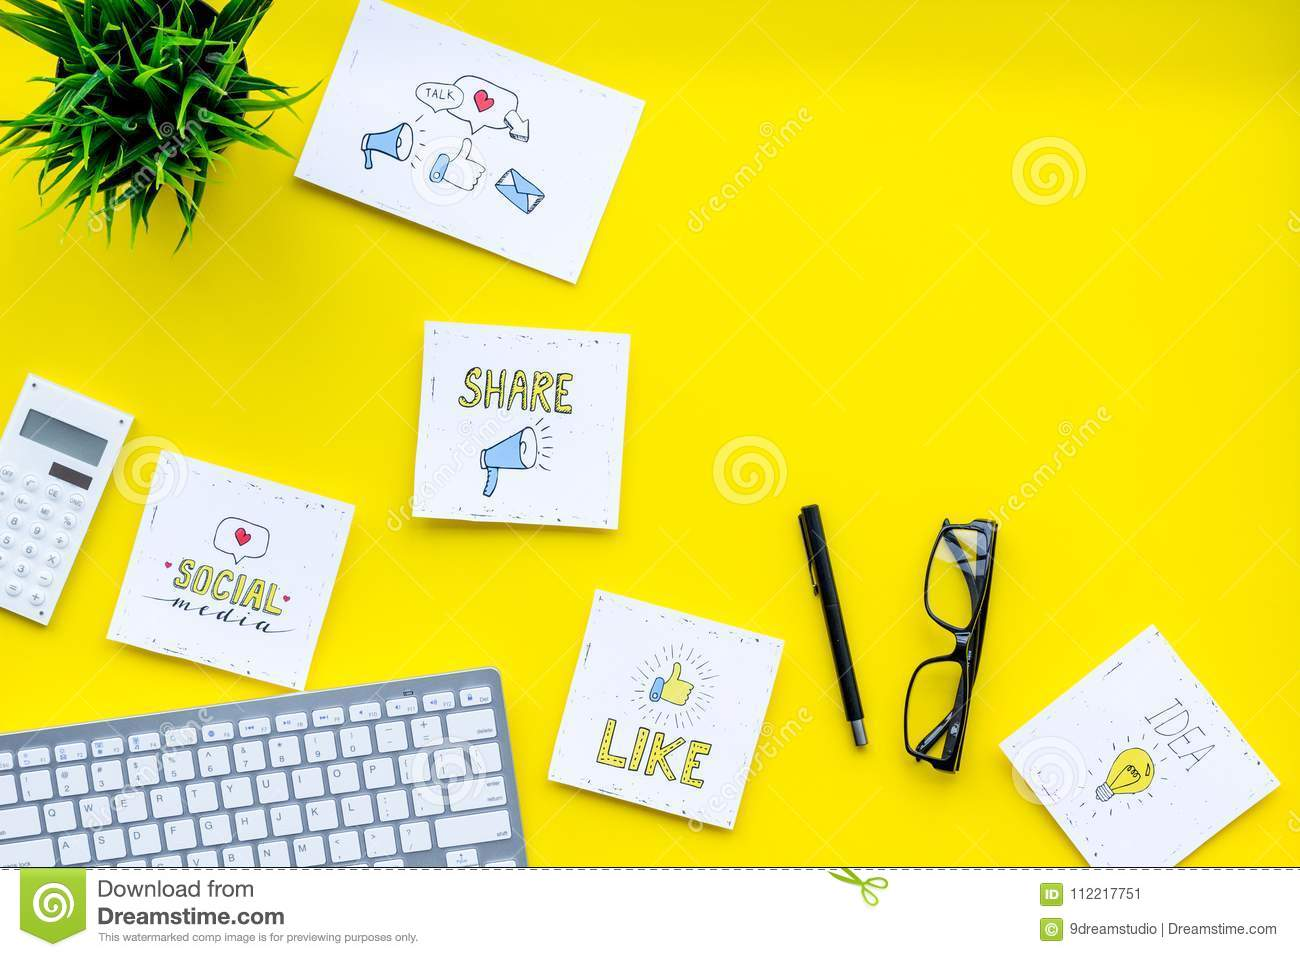 Socail media icons on work desk of marketing expert. Digital promotion of goods and services. Yellow background top view